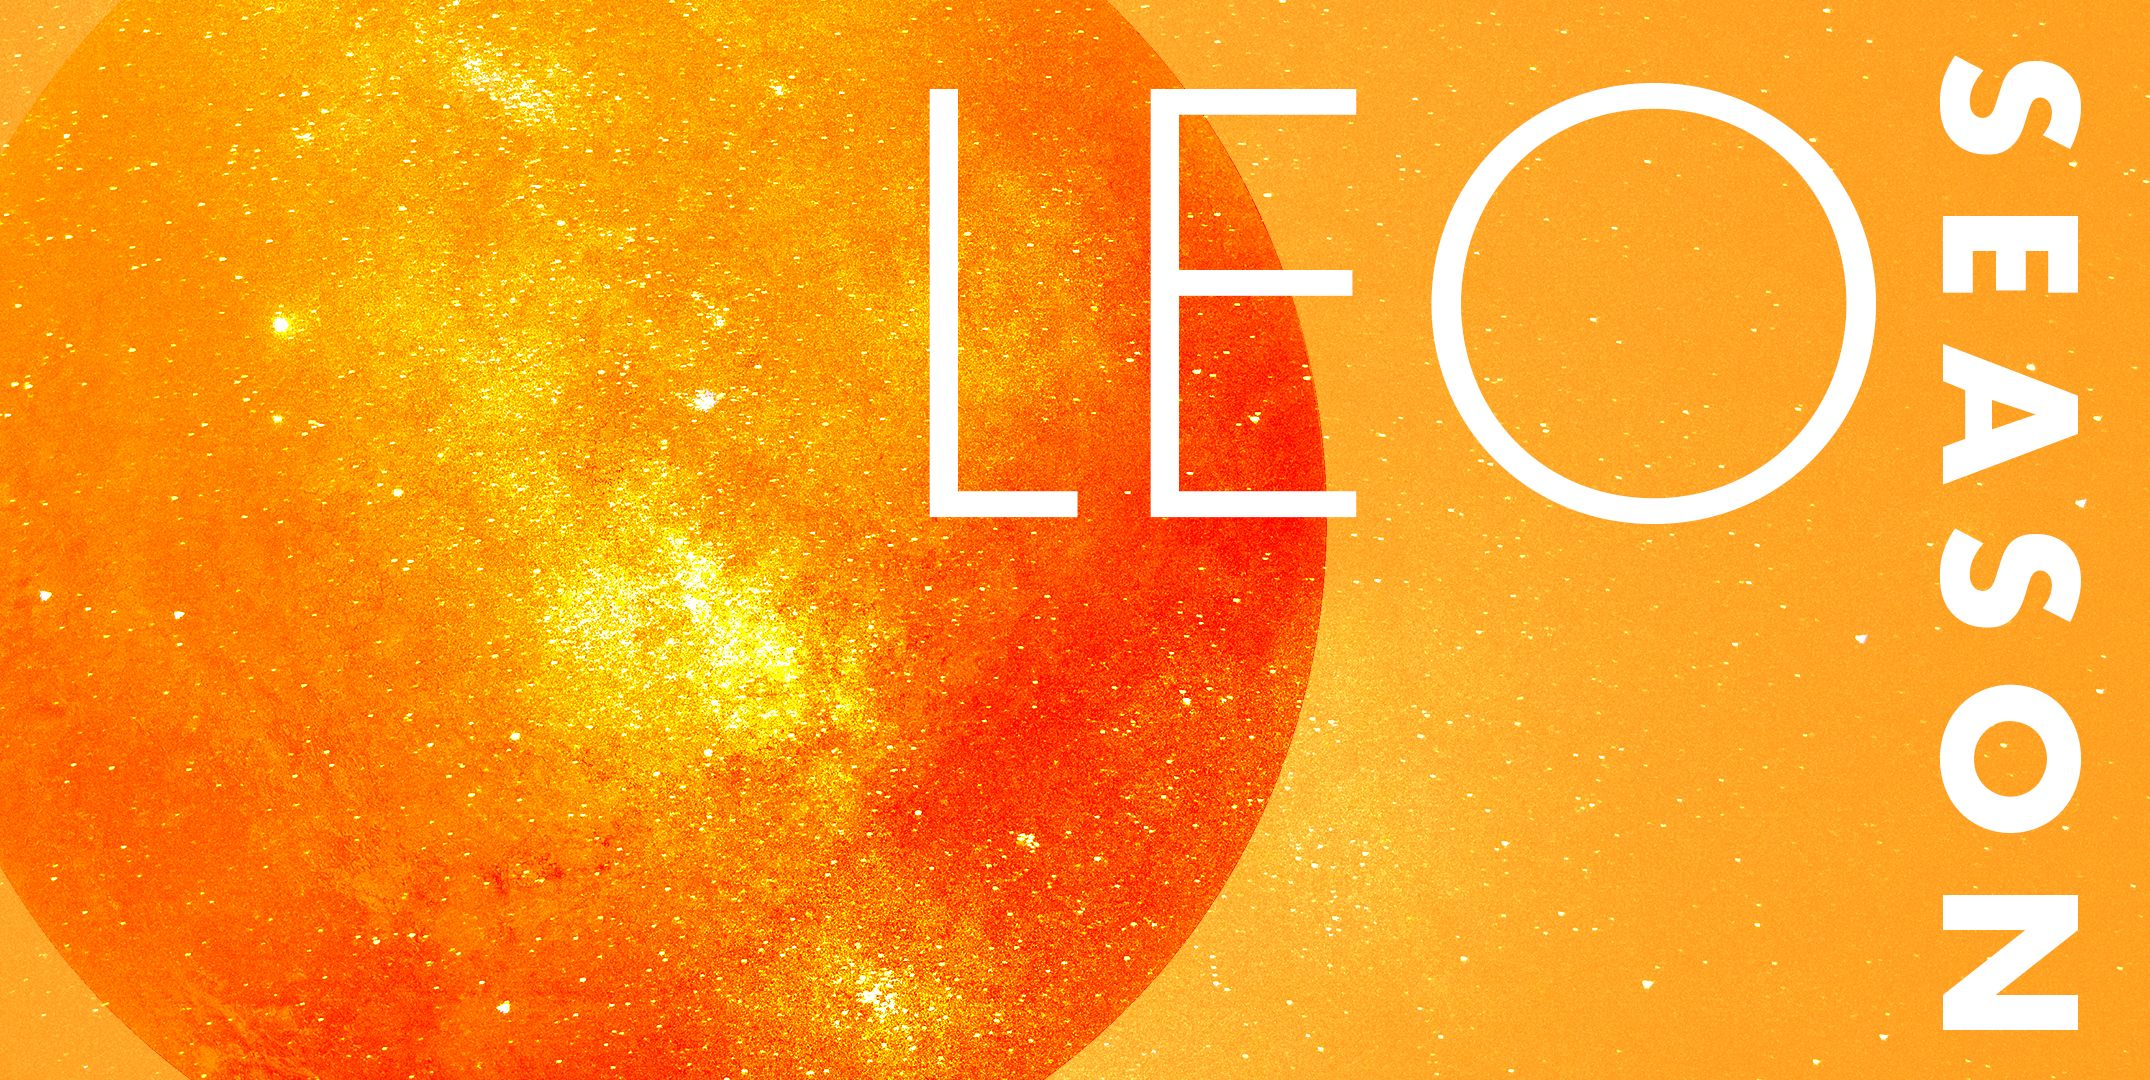 What You Need To Know About Leo Season - Leo Season 2018